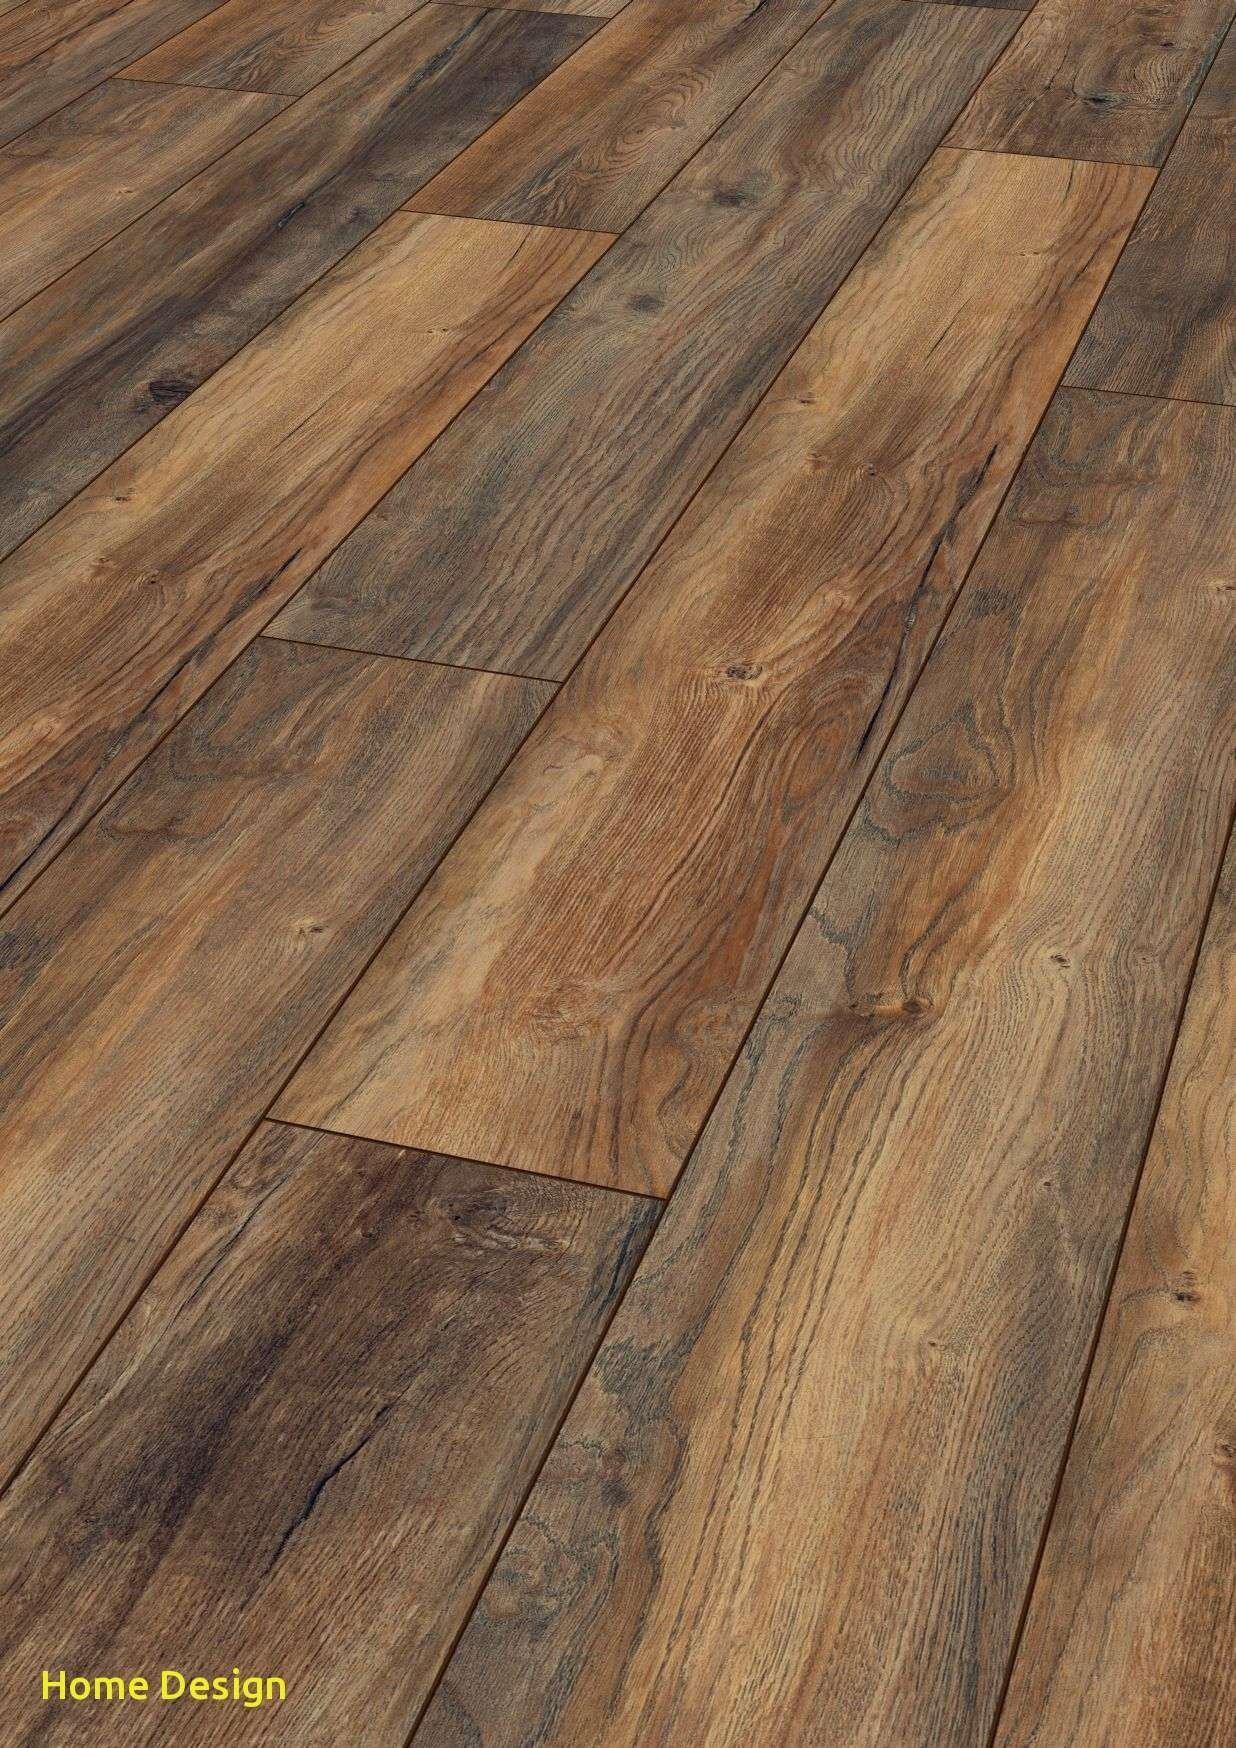 Pin by aj s on Floors Laminate flooring colors, Laminate